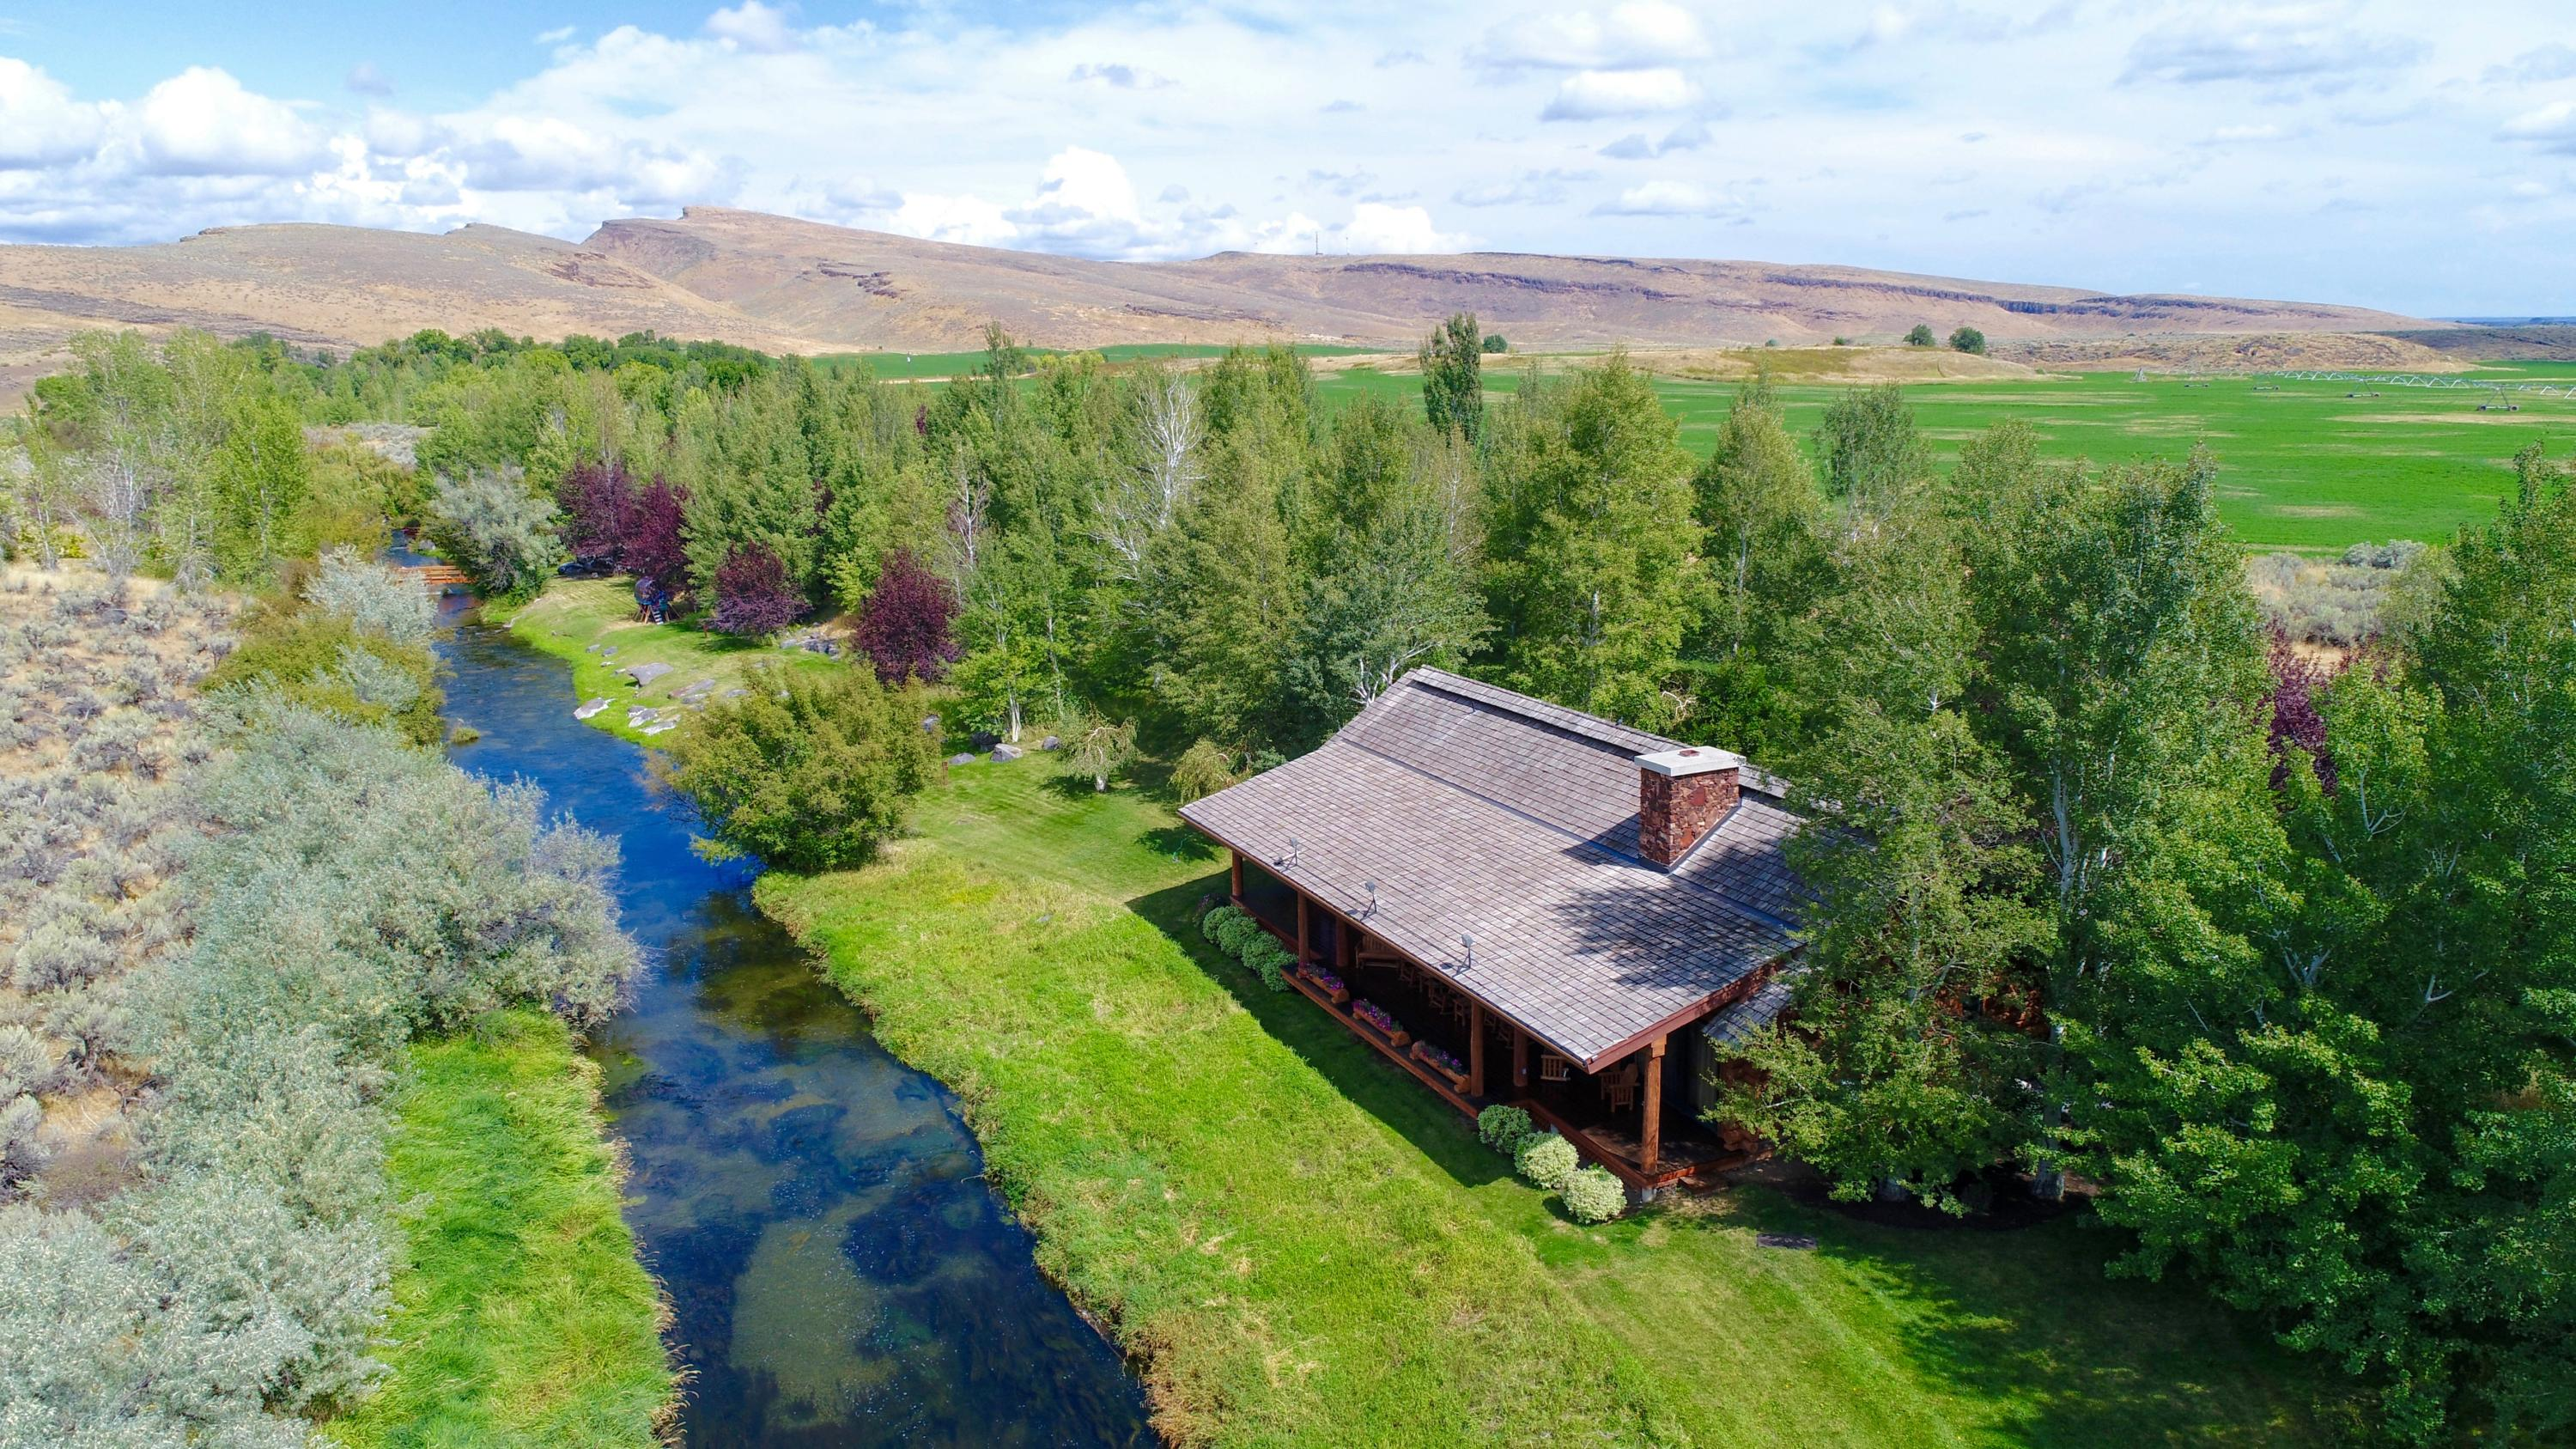 249 Priest Road, Picabo, ID 83348 - Picabo, ID real estate listing